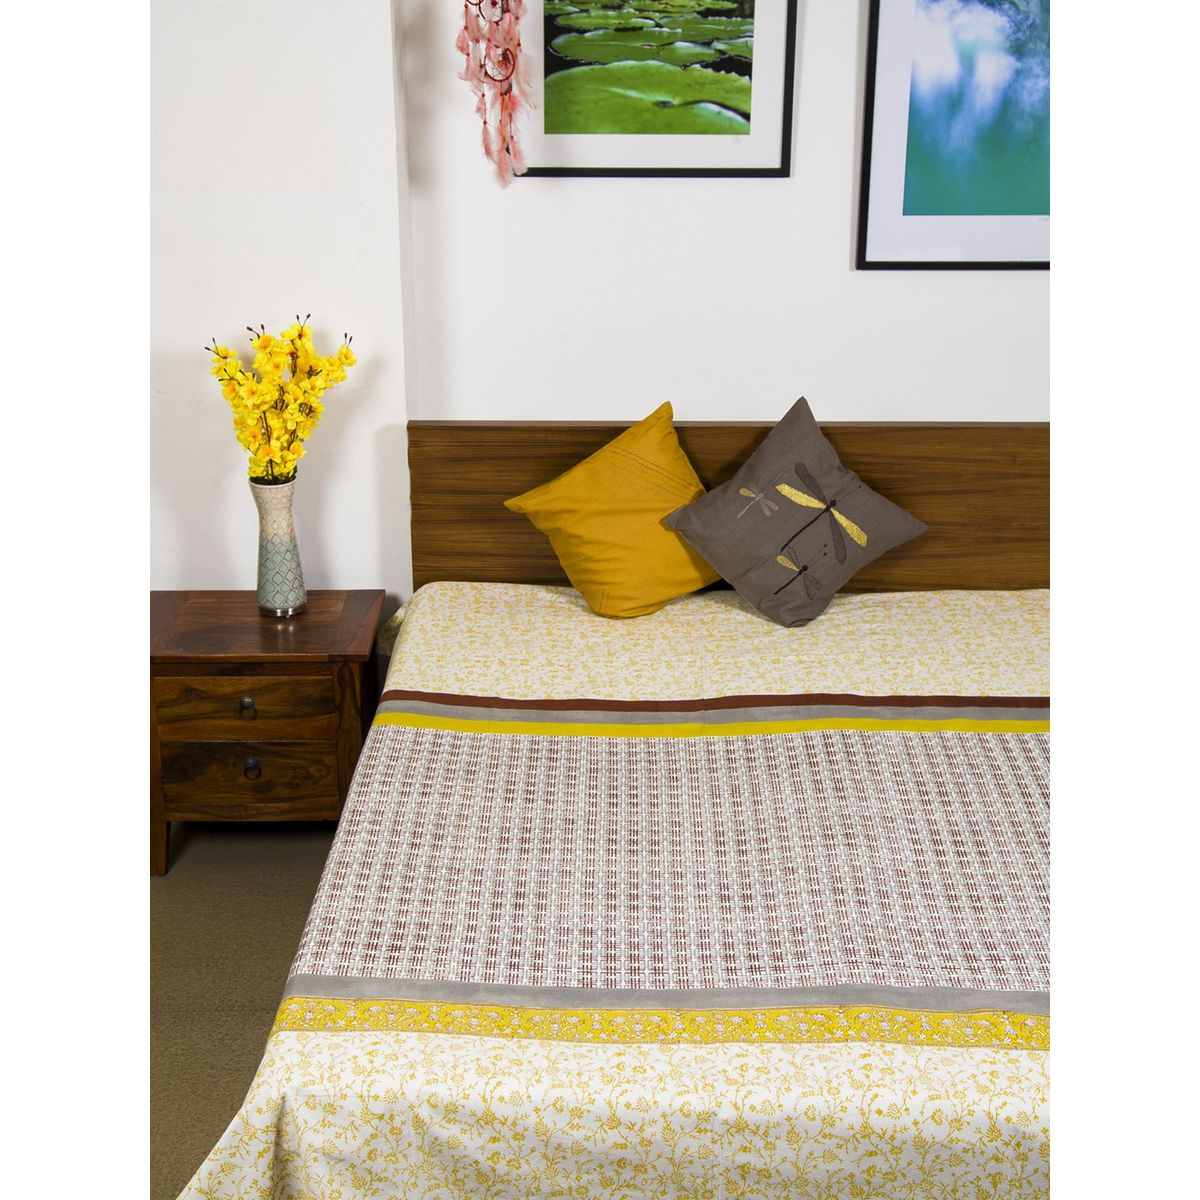 Divit Single Bedsheet without Pillow Cover